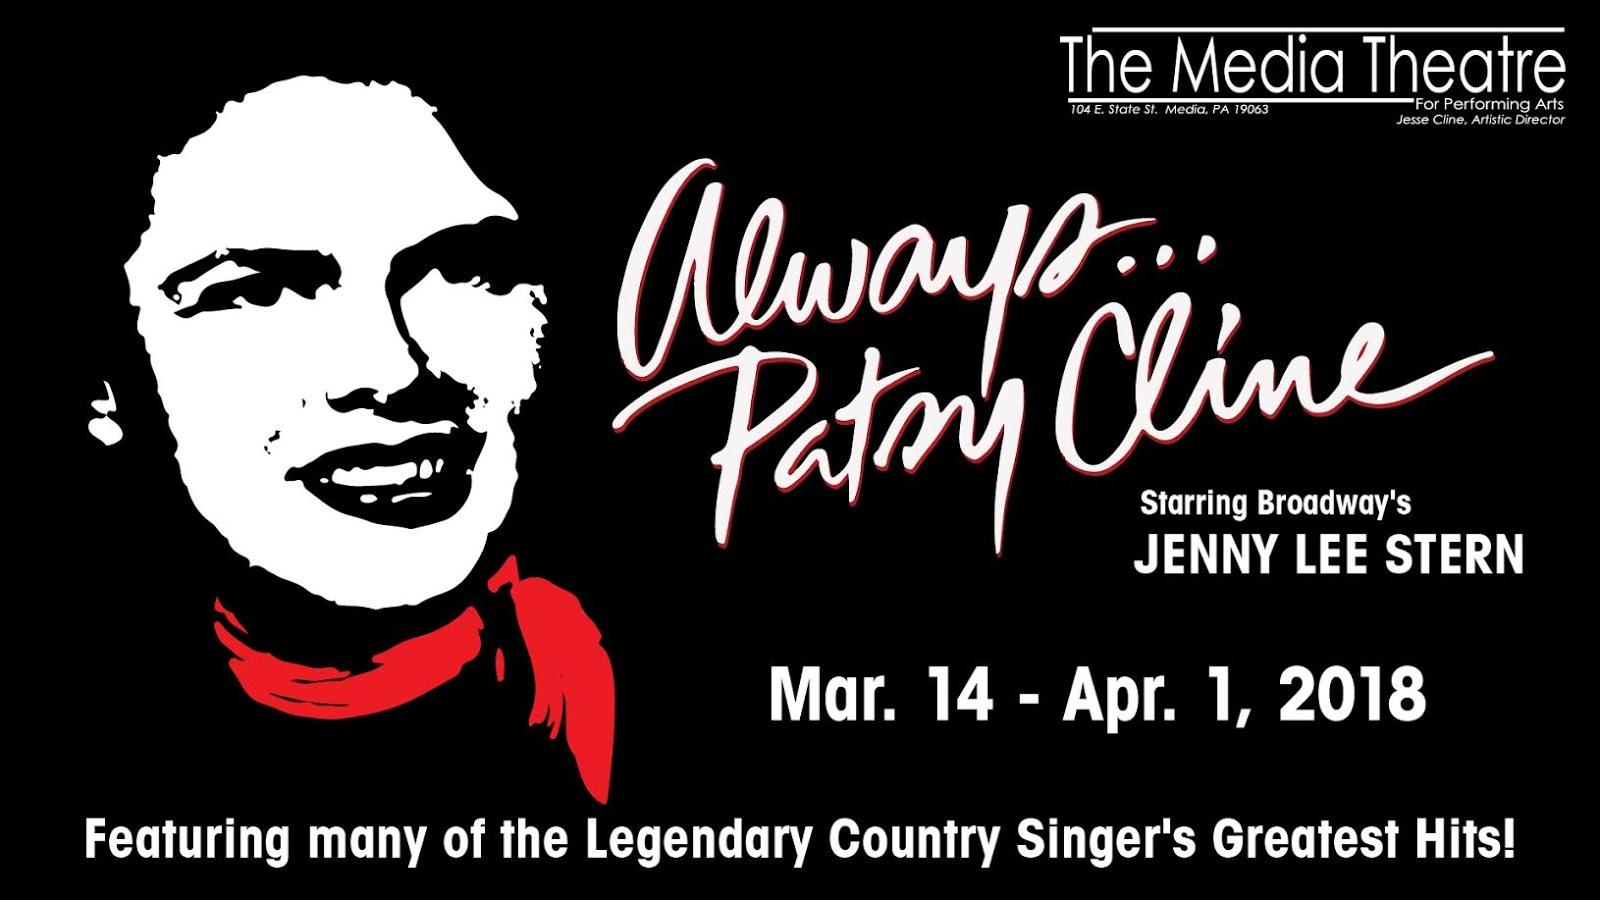 Media Theatre News!: 'ALWAYS, PATSY CLINE' IS ON STAGE AT THE MEDIA